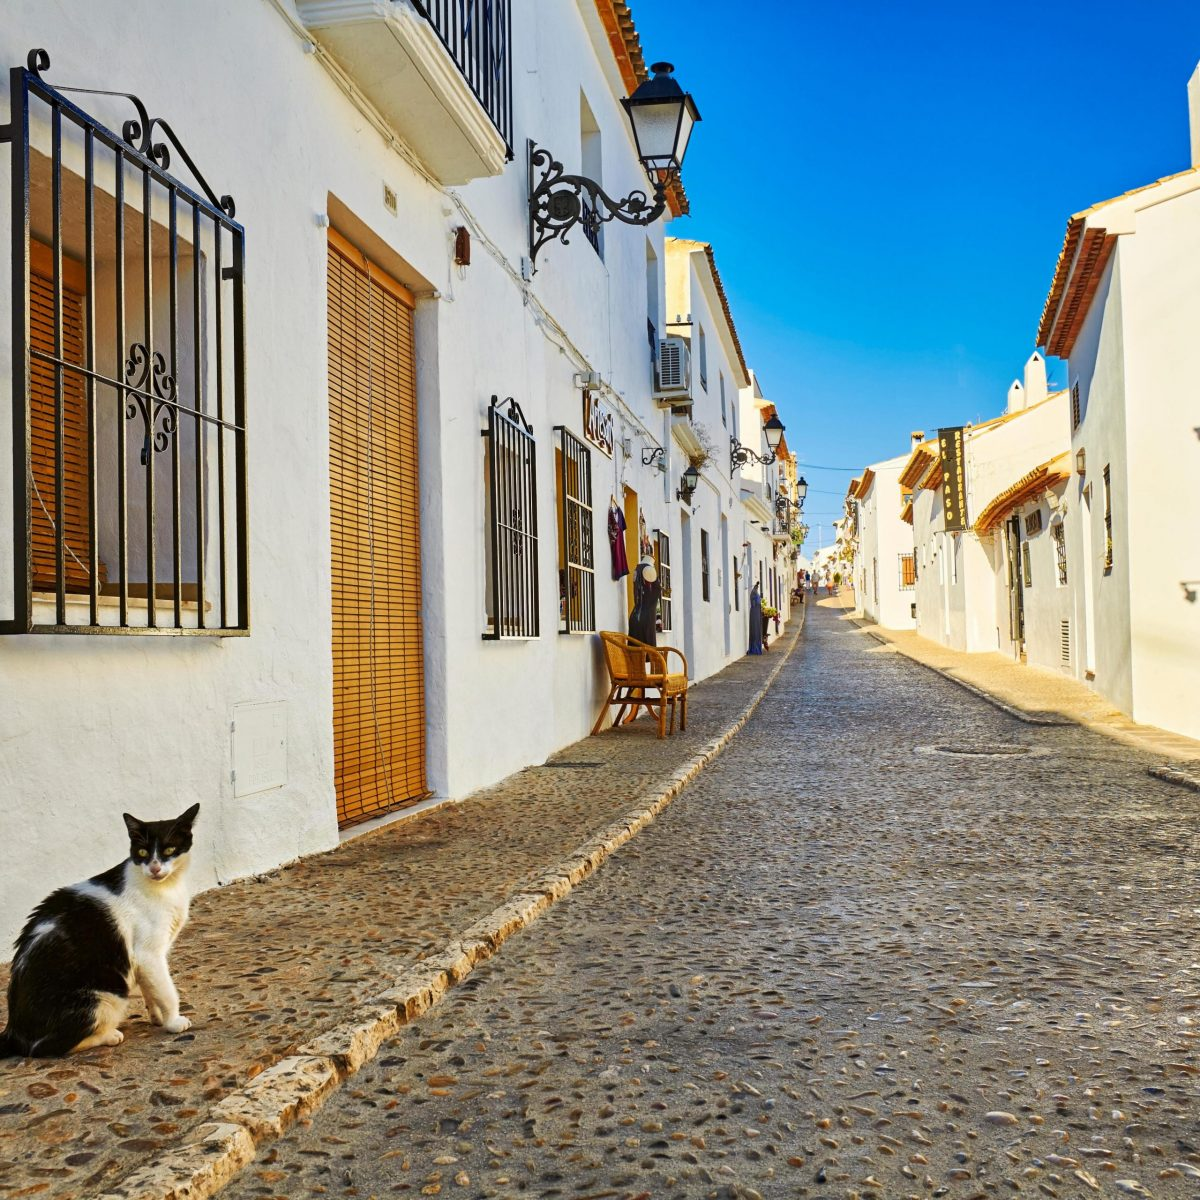 Cat in Spain. How was she treated?